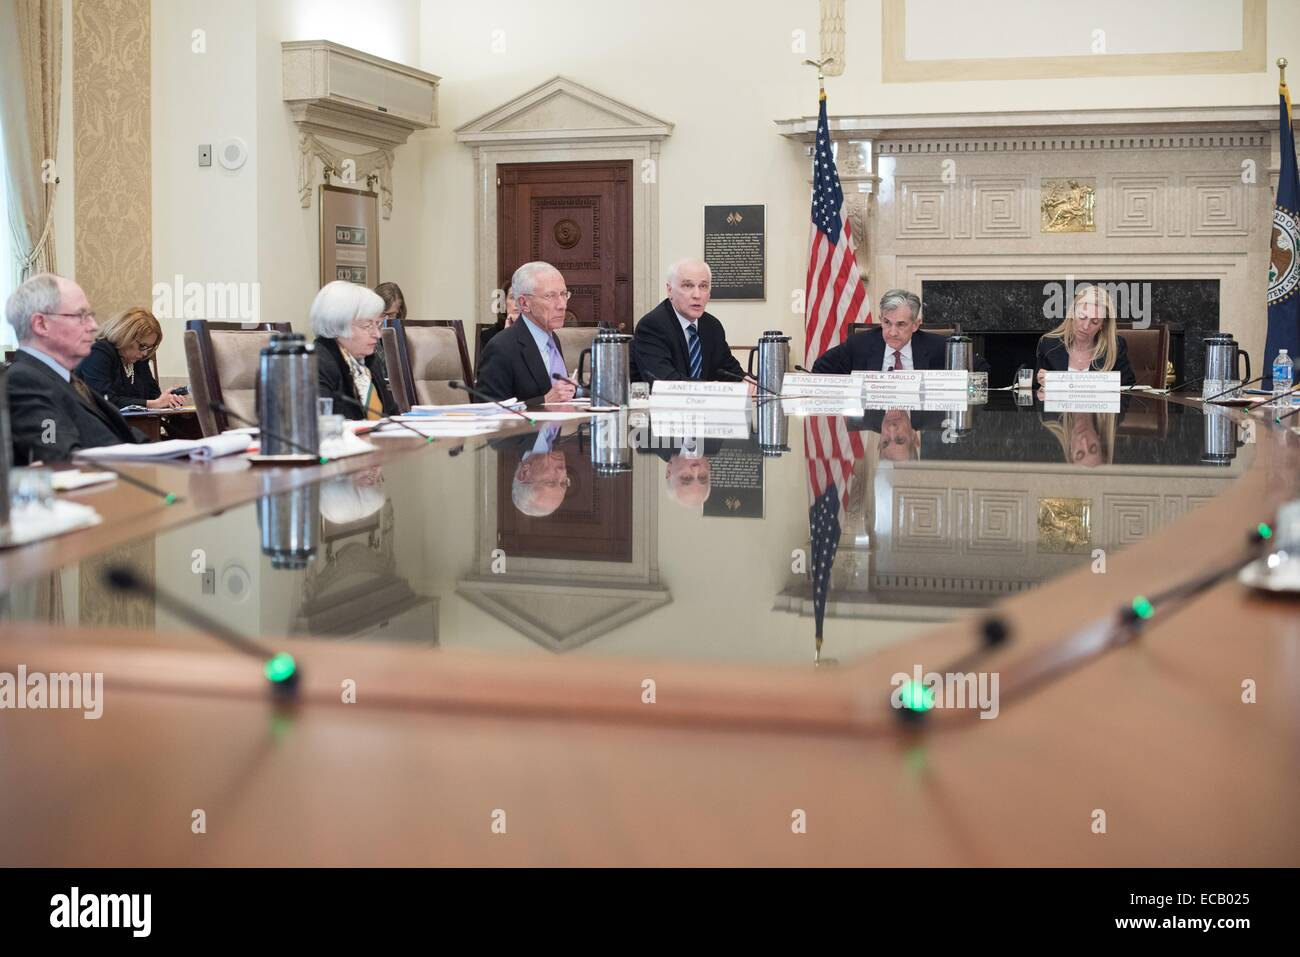 US Federal Reserve governors meet to discuss Fed governors discuss proposed rule for risk-based capital surcharges Stock Photo